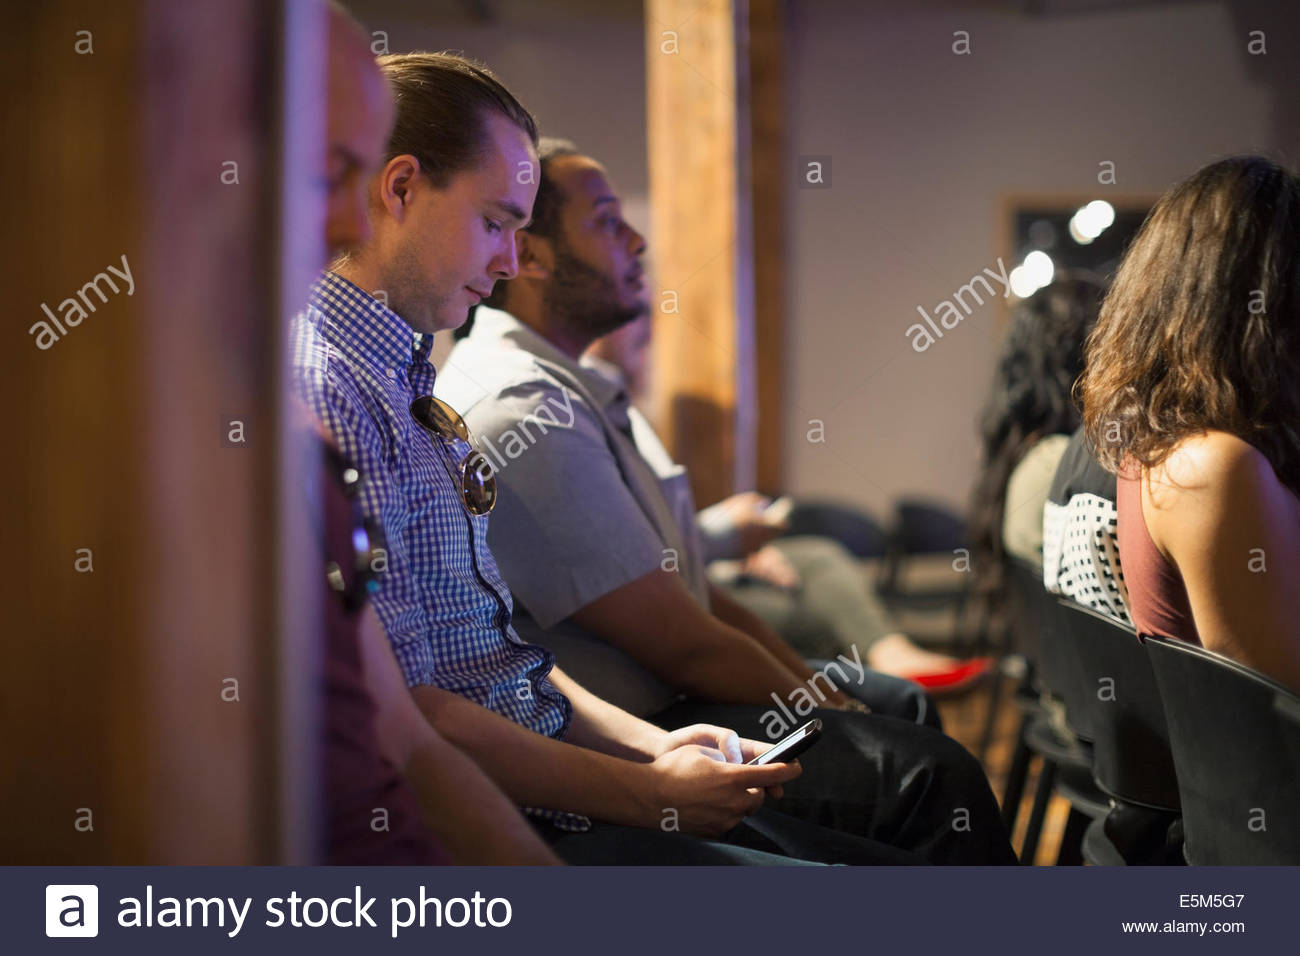 Man in audience checking cell phone - Stock Image